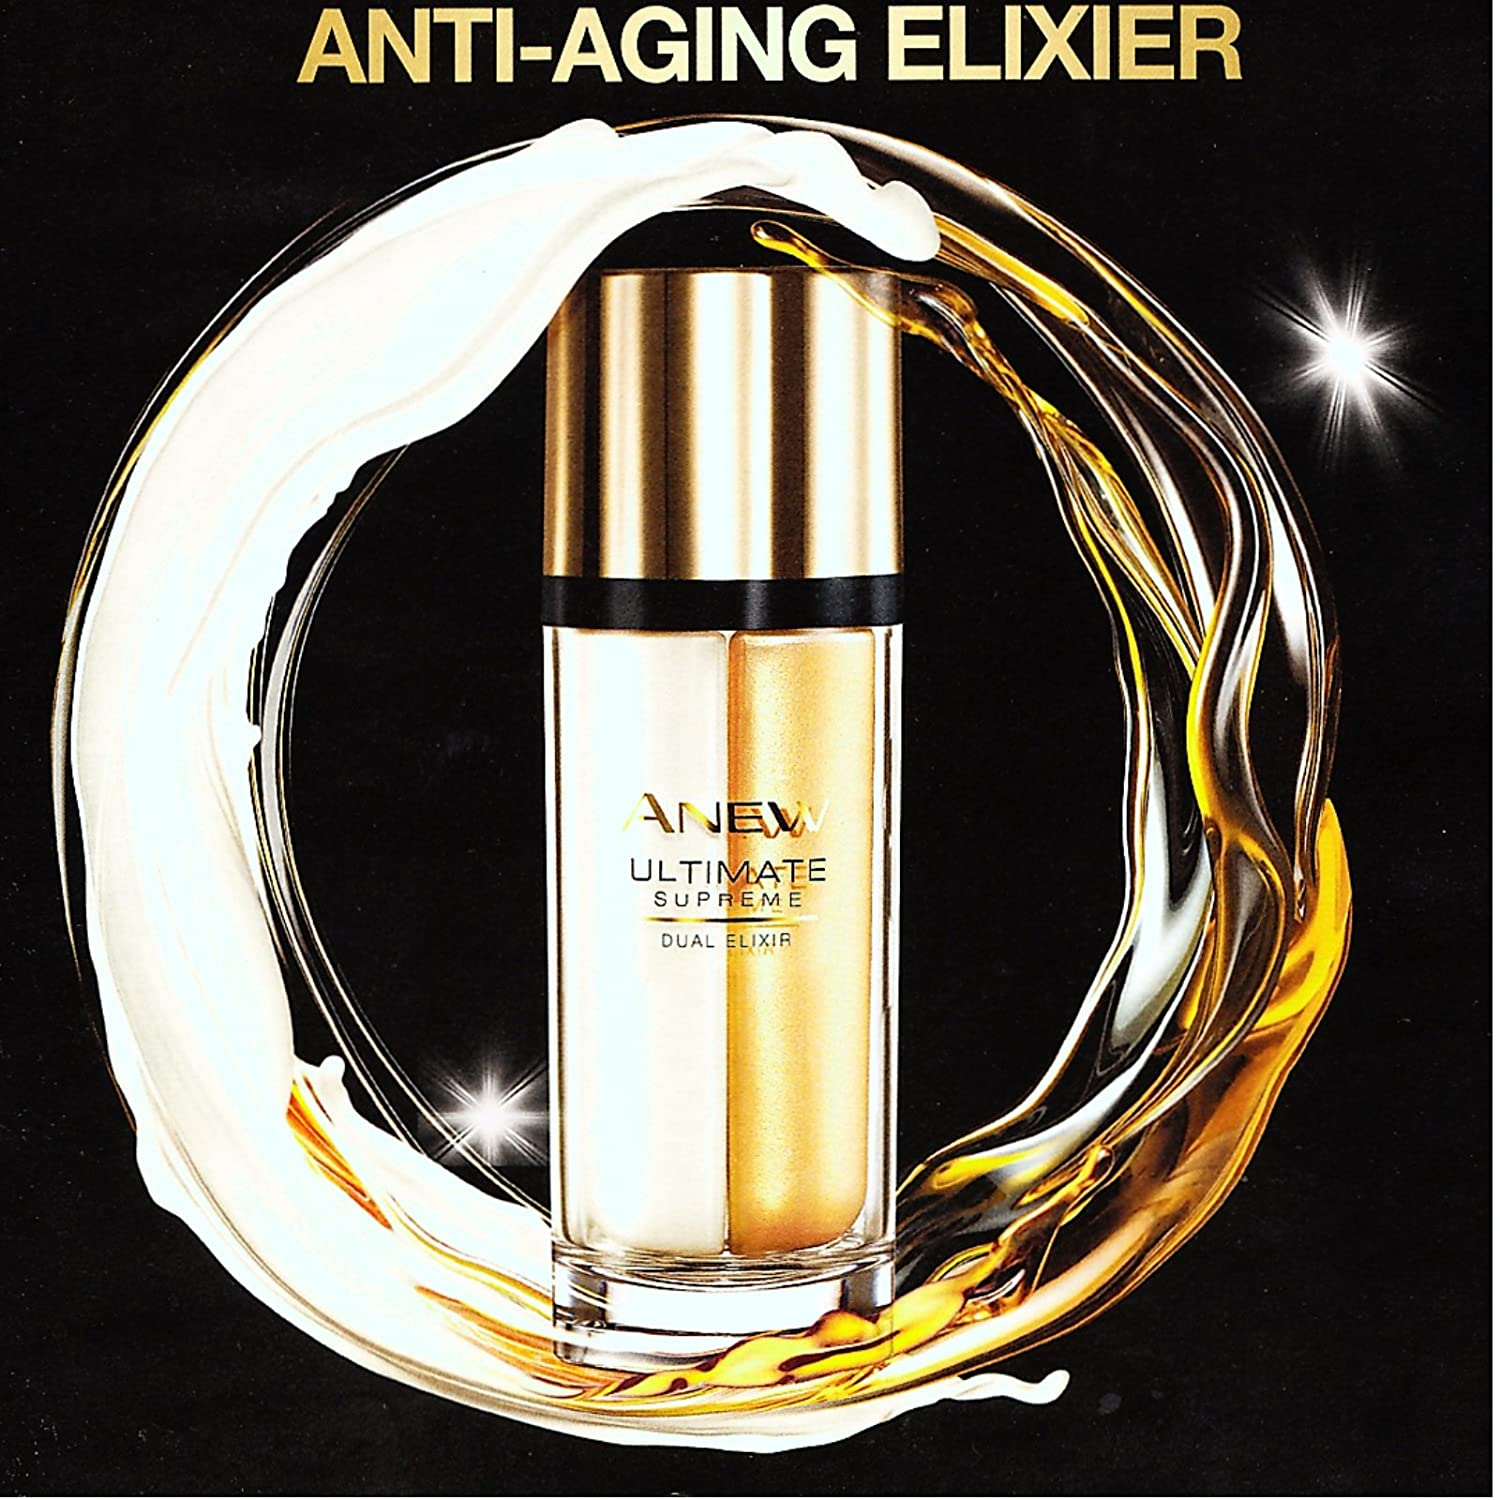 AVON Anew Ultimate Supreme Dual Elixir 40ml – 1.35oz